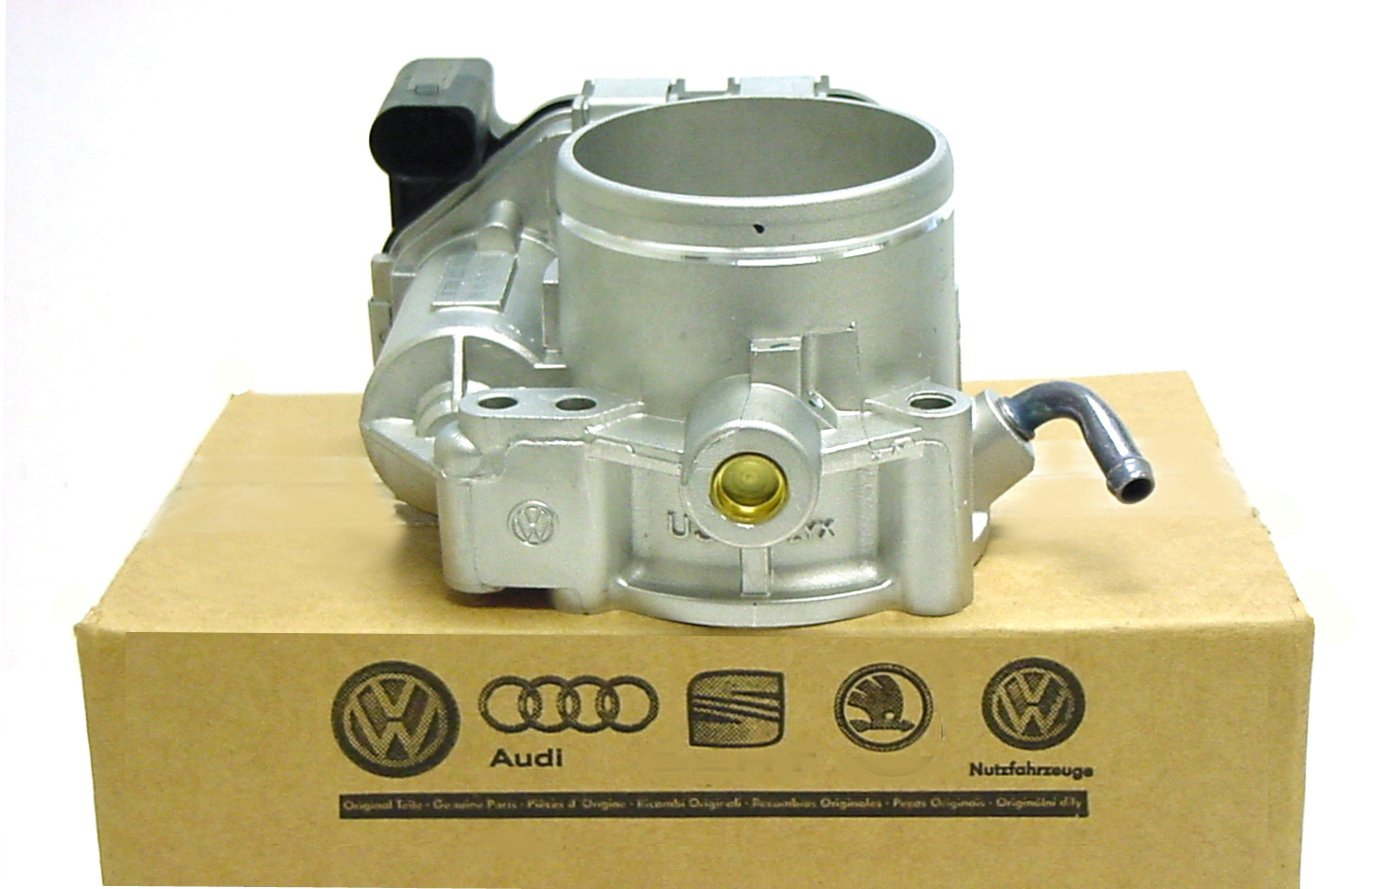 Genuine VW Throttle Body 2.5 Jetta Beetle Rabbit Golf Passat 2008-14 with TPS 07K-133-062-A by Volkswagen